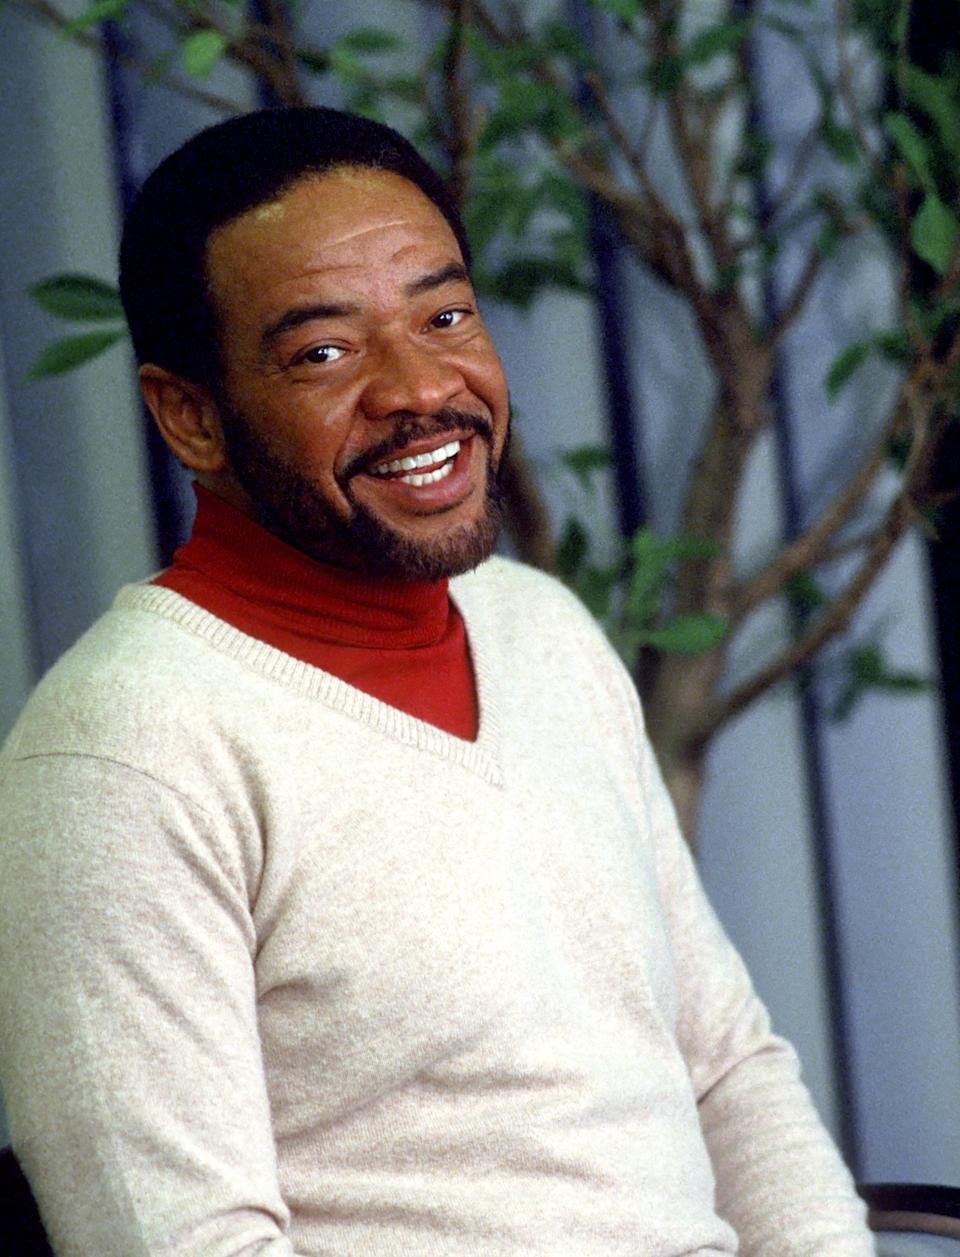 Singer/songwriter Bill Withers poses for a portrait session in 1985. (Photo by Michael Ochs Archives/Getty Images)